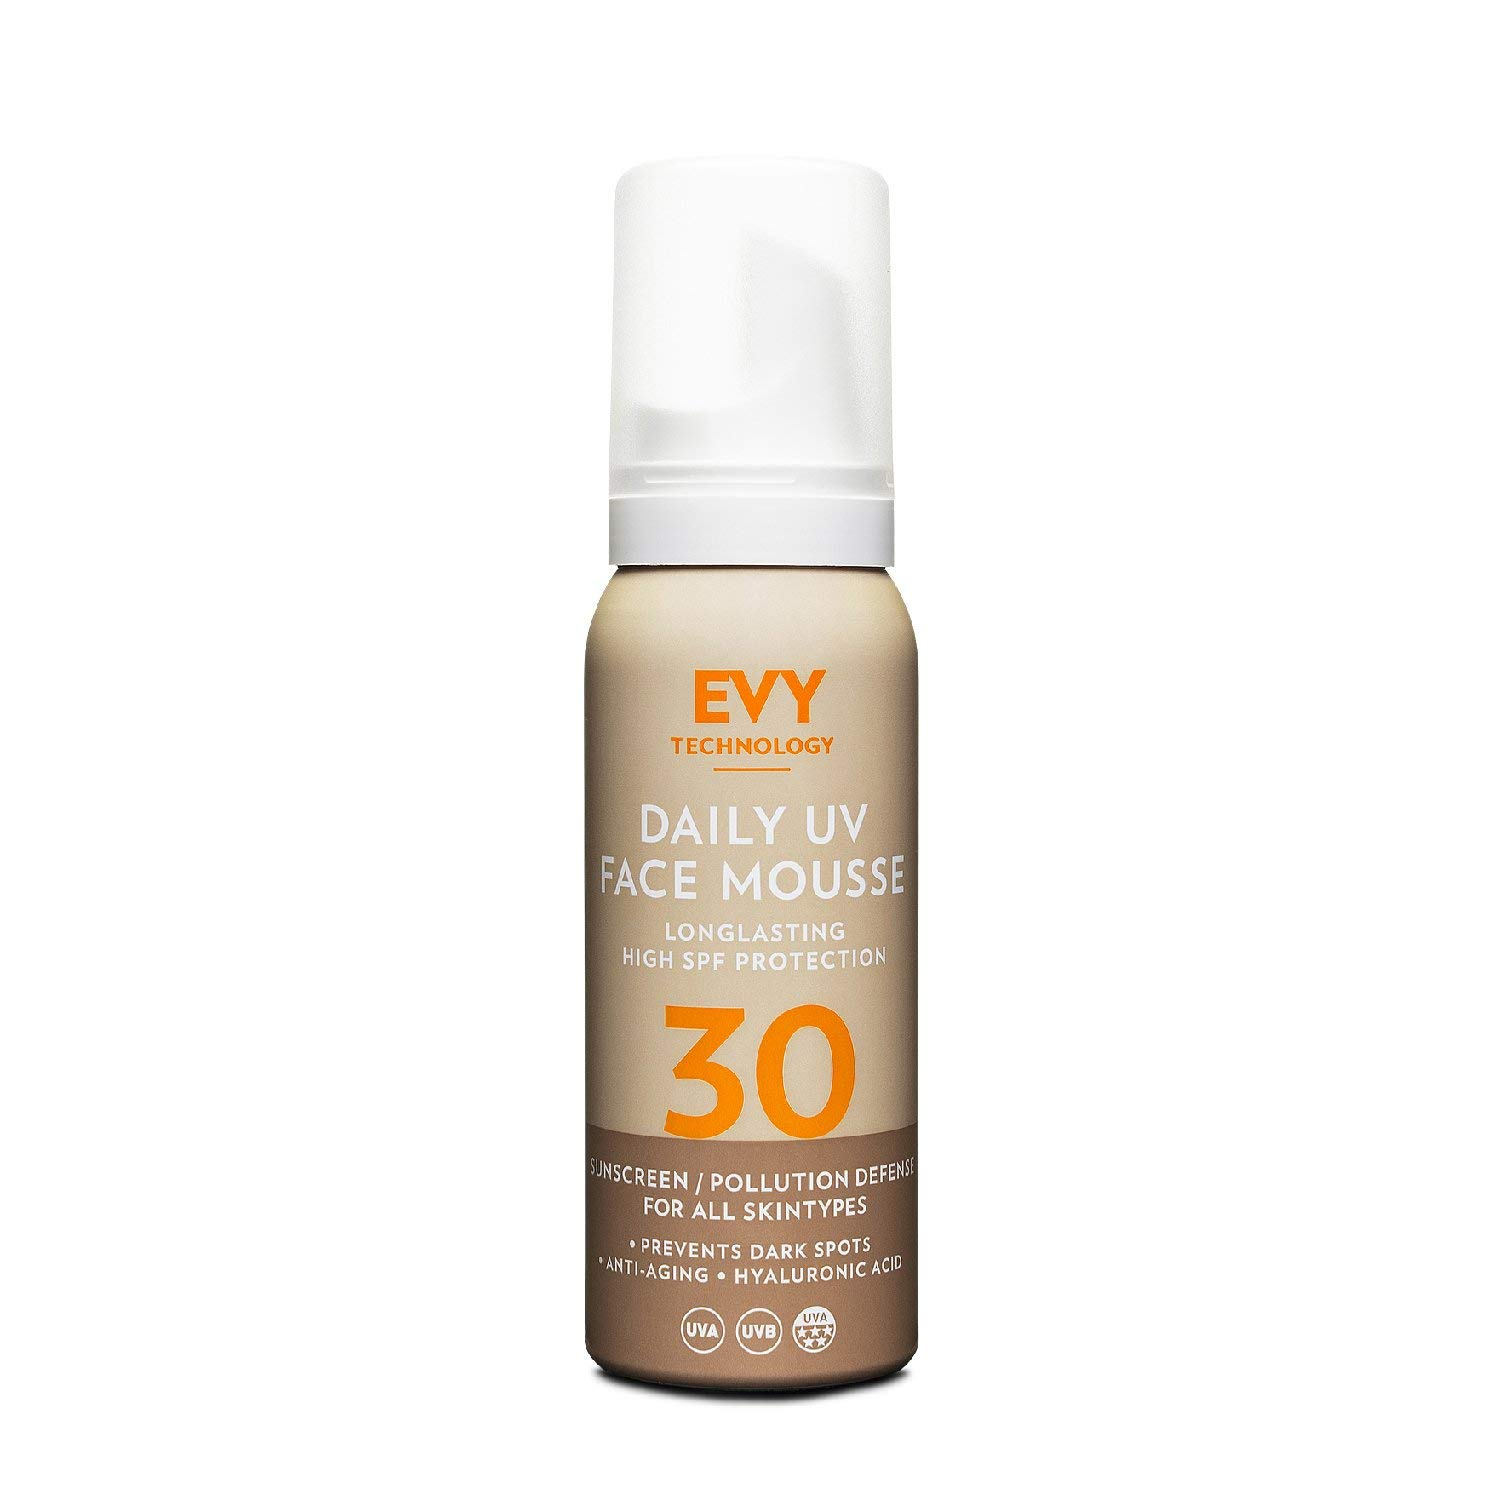 Evy Sunscreen Daily UV Face Mousse SPF30 75ml